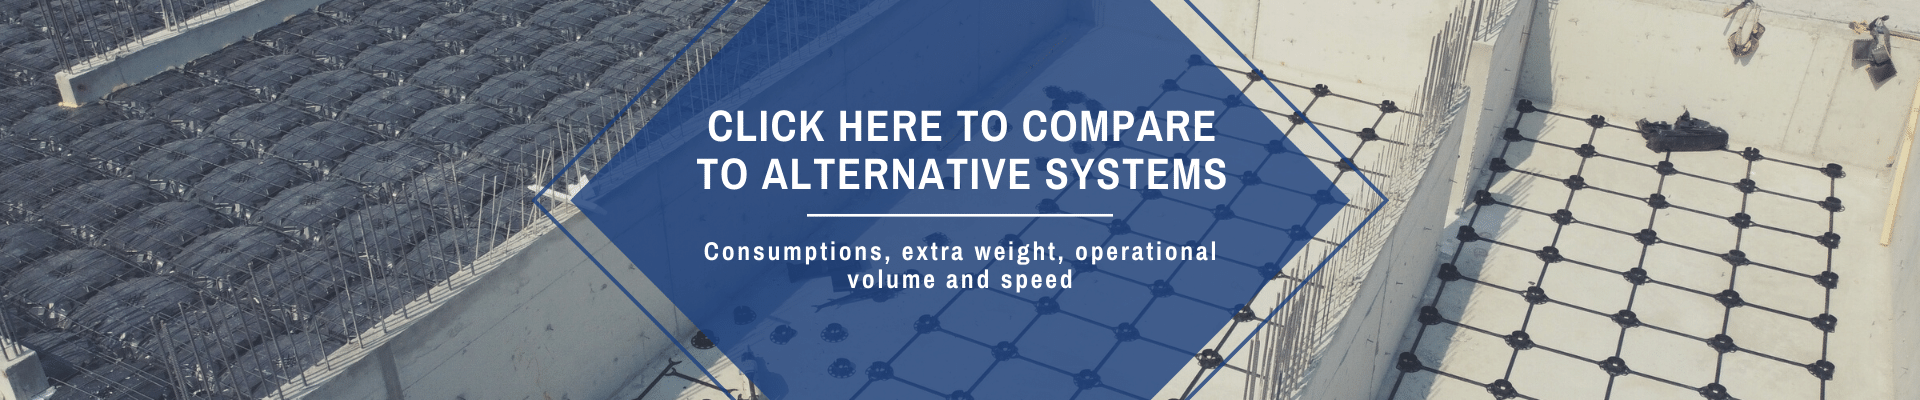 CLICK HERE TO COMPARE TO ALTERNATIVE SYSTEMS